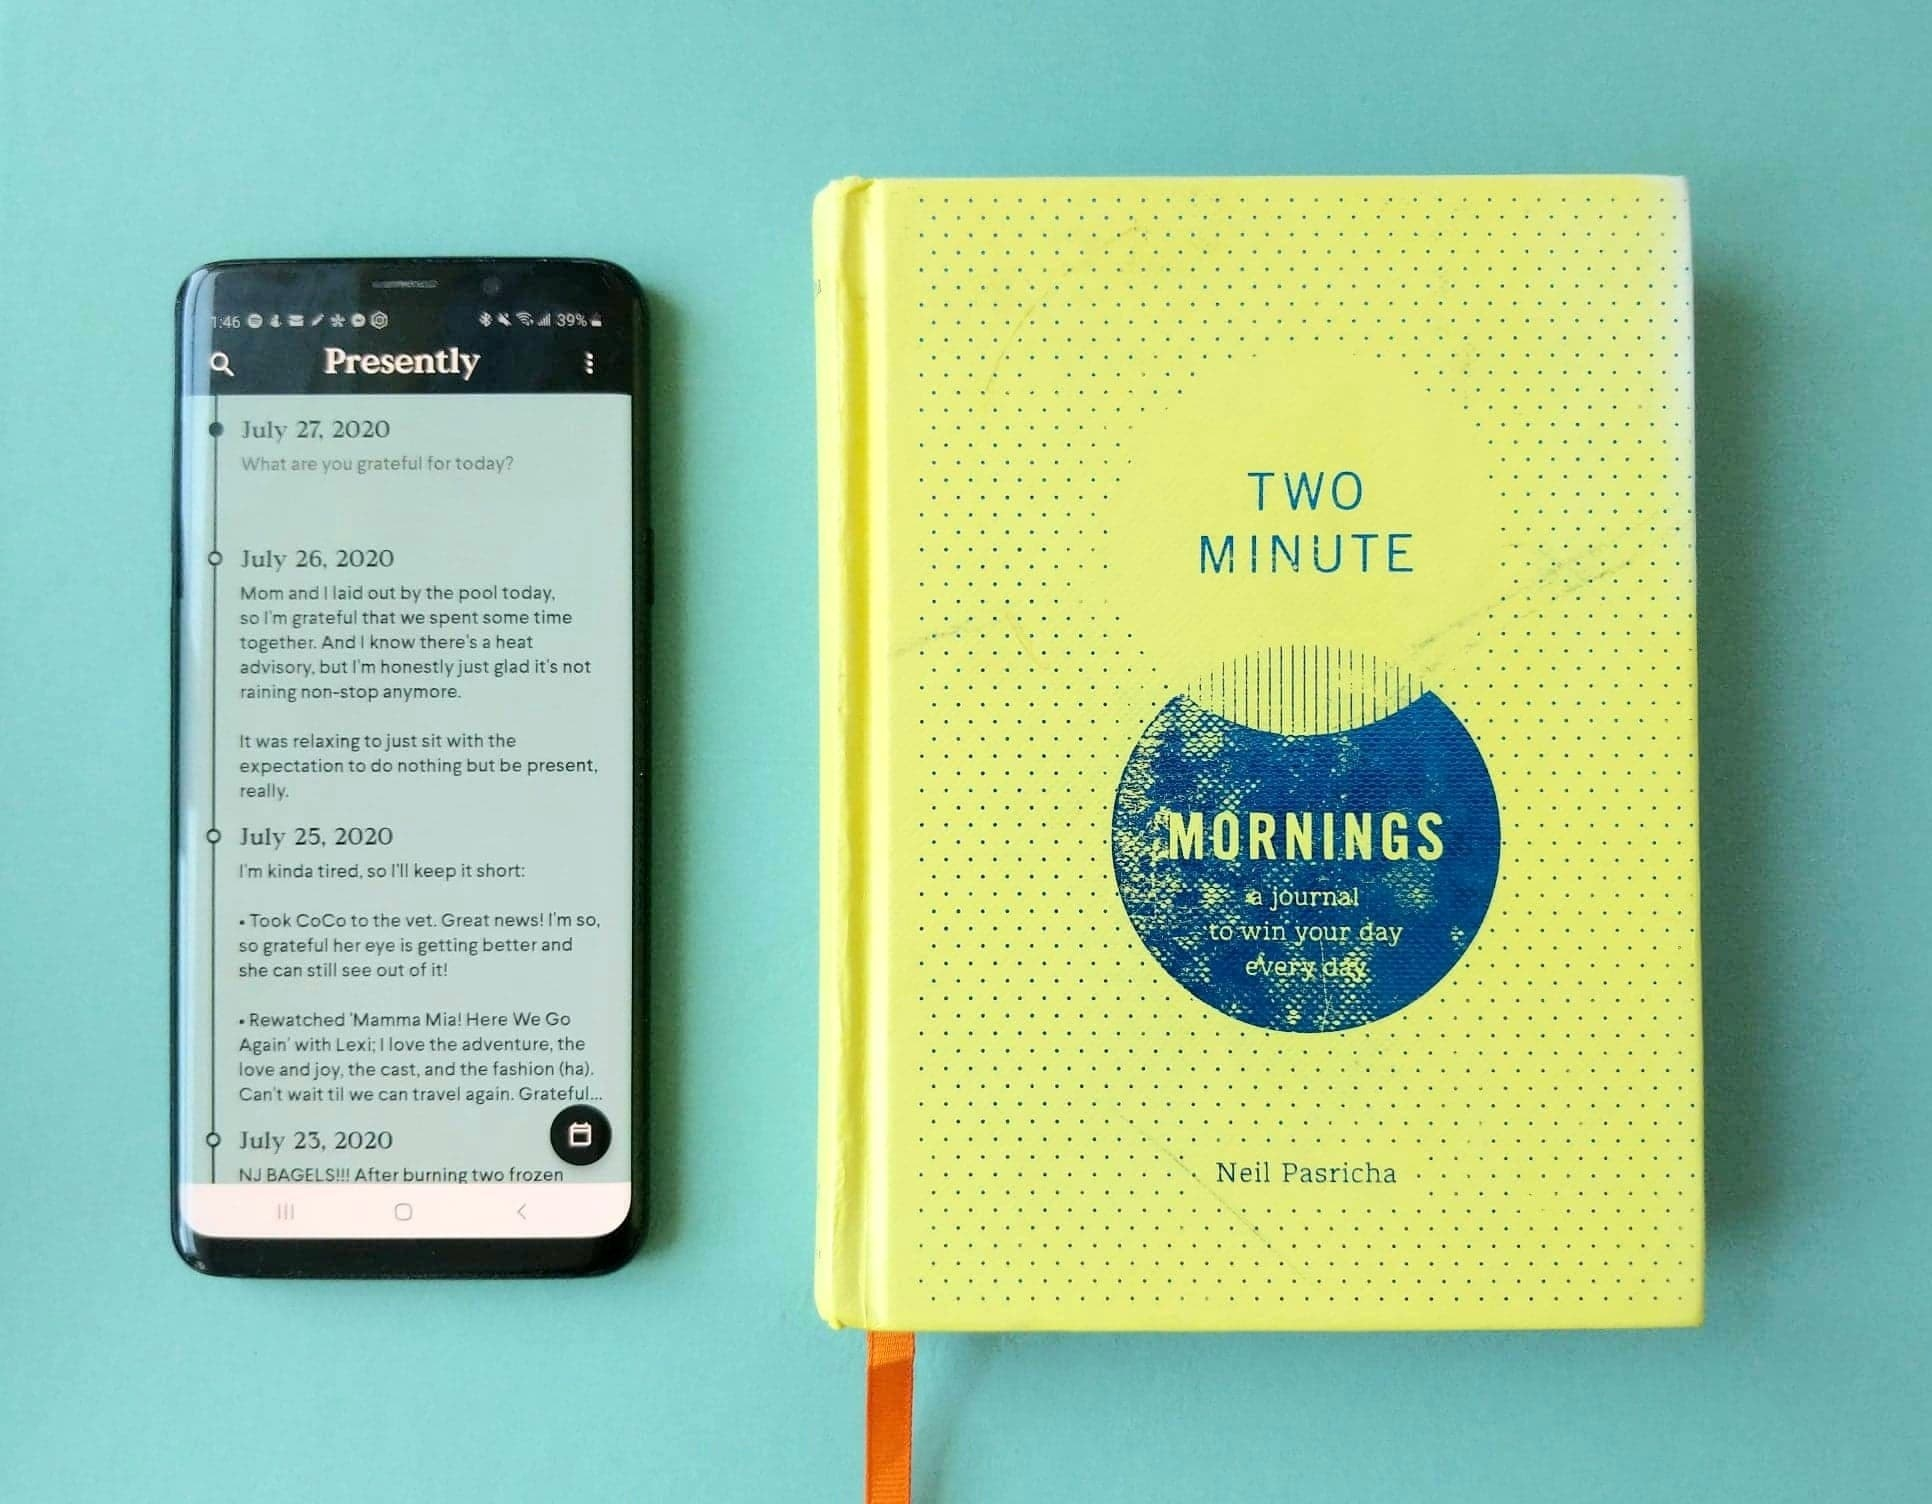 The phone with the presently app laid out next to the Two Minute Morning journal